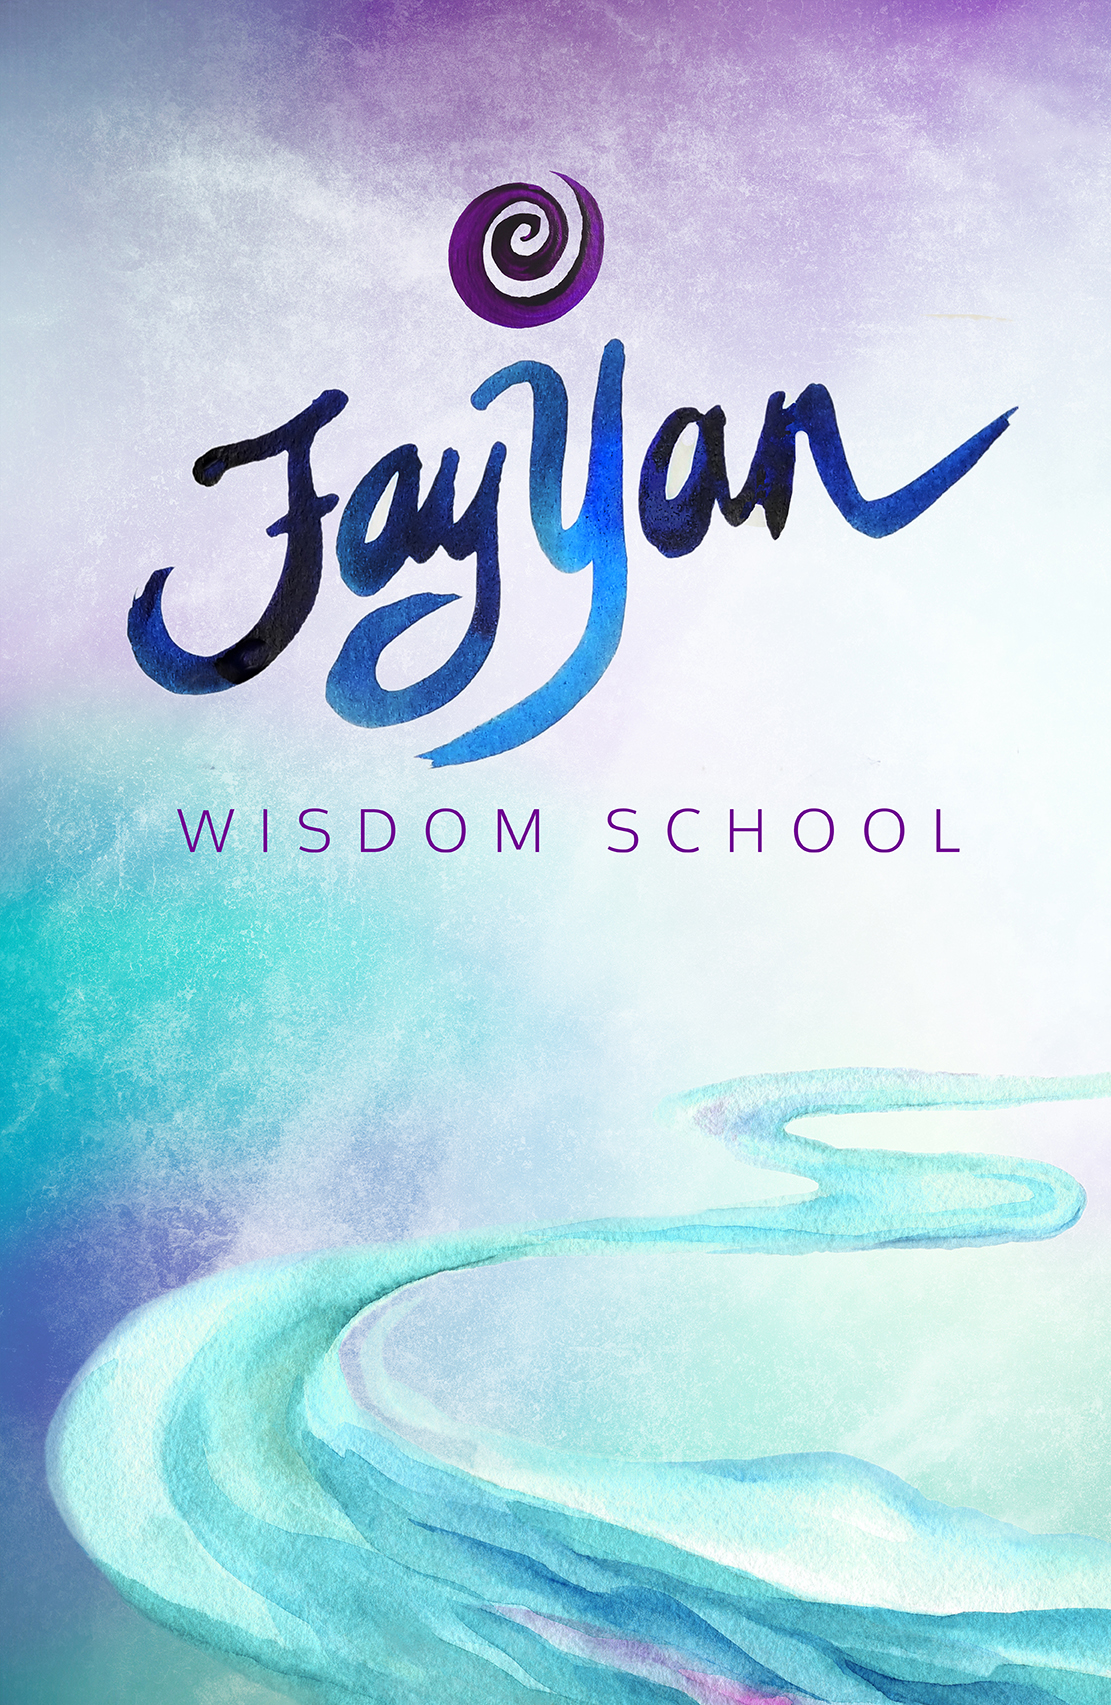 Fay Yan Wisdom School Logo by Julia Stege the Magical Marketer